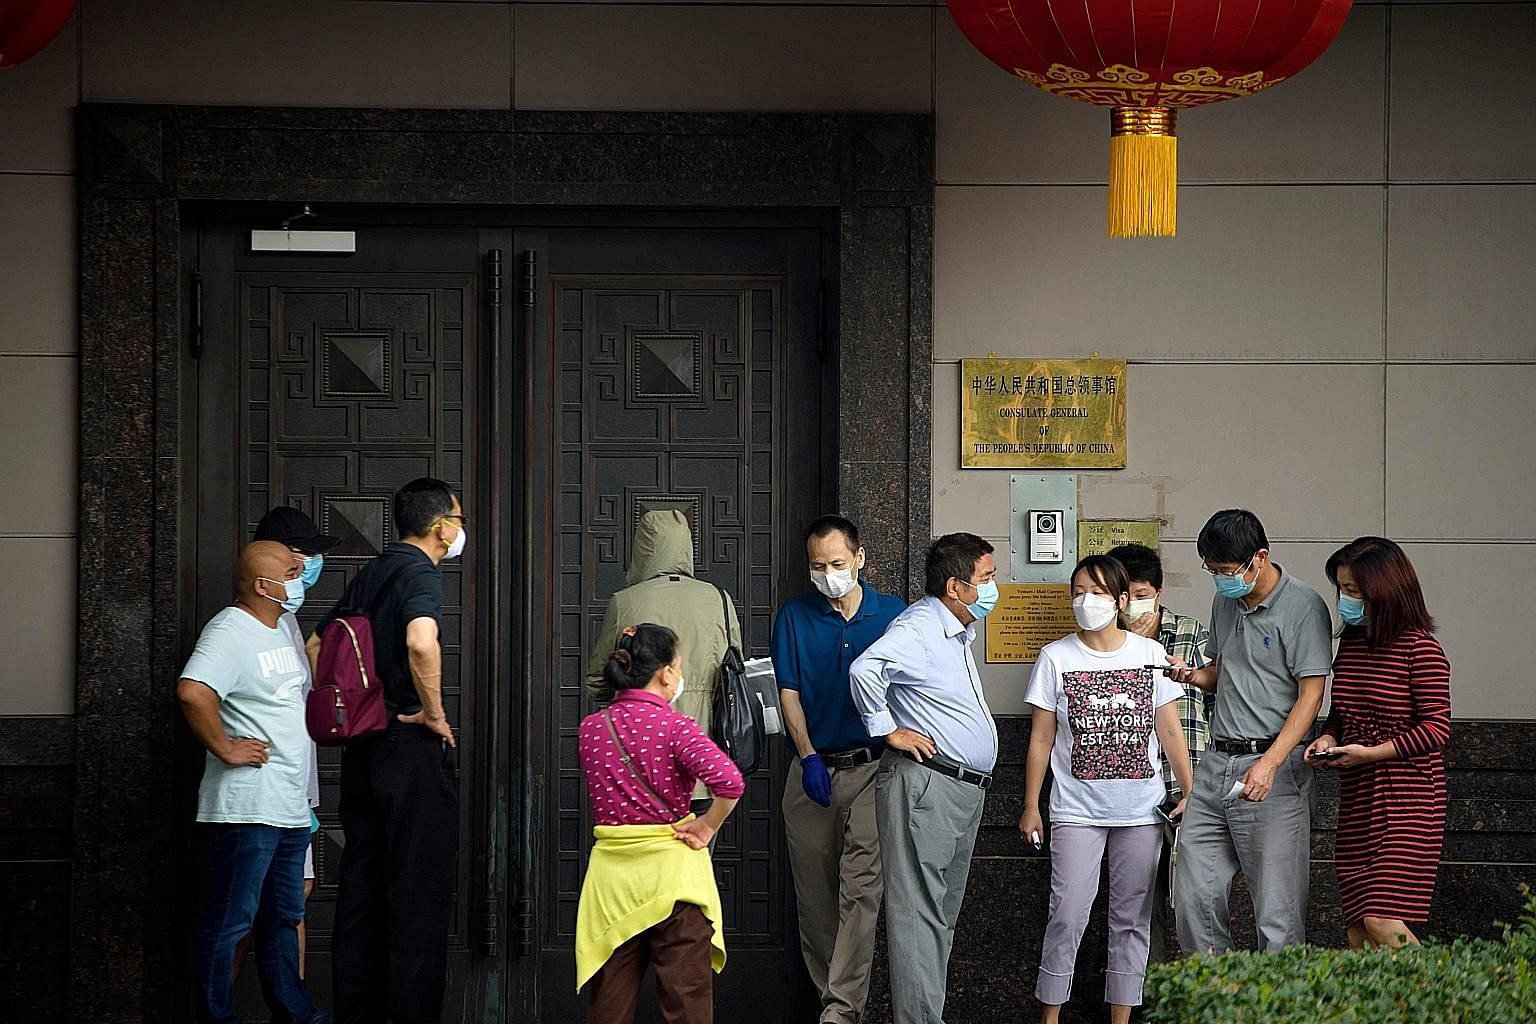 People seeking to talk to staff at the Chinese consulate in Houston, Texas, on Wednesday, when the US ordered its closure over commercial espionage and intellectual property theft from American firms and gave Chinese diplomats 72 hours to pack up.